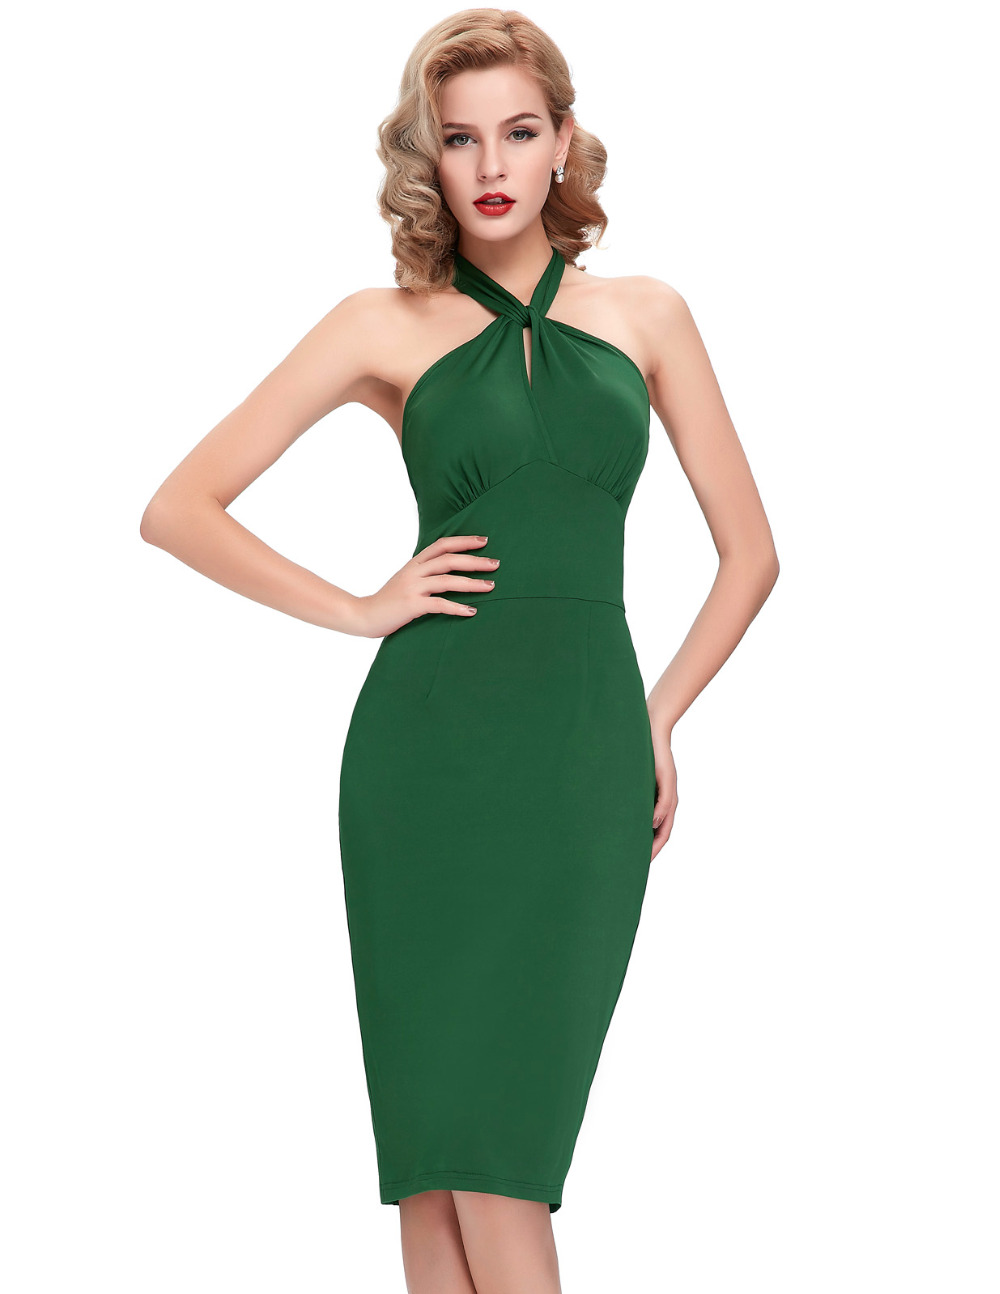 EMERALD GREEN LONG SLEEVE BODYCON DRESS - Wroc?awski Informator Internetowy - Wroc?aw Wroclaw ...